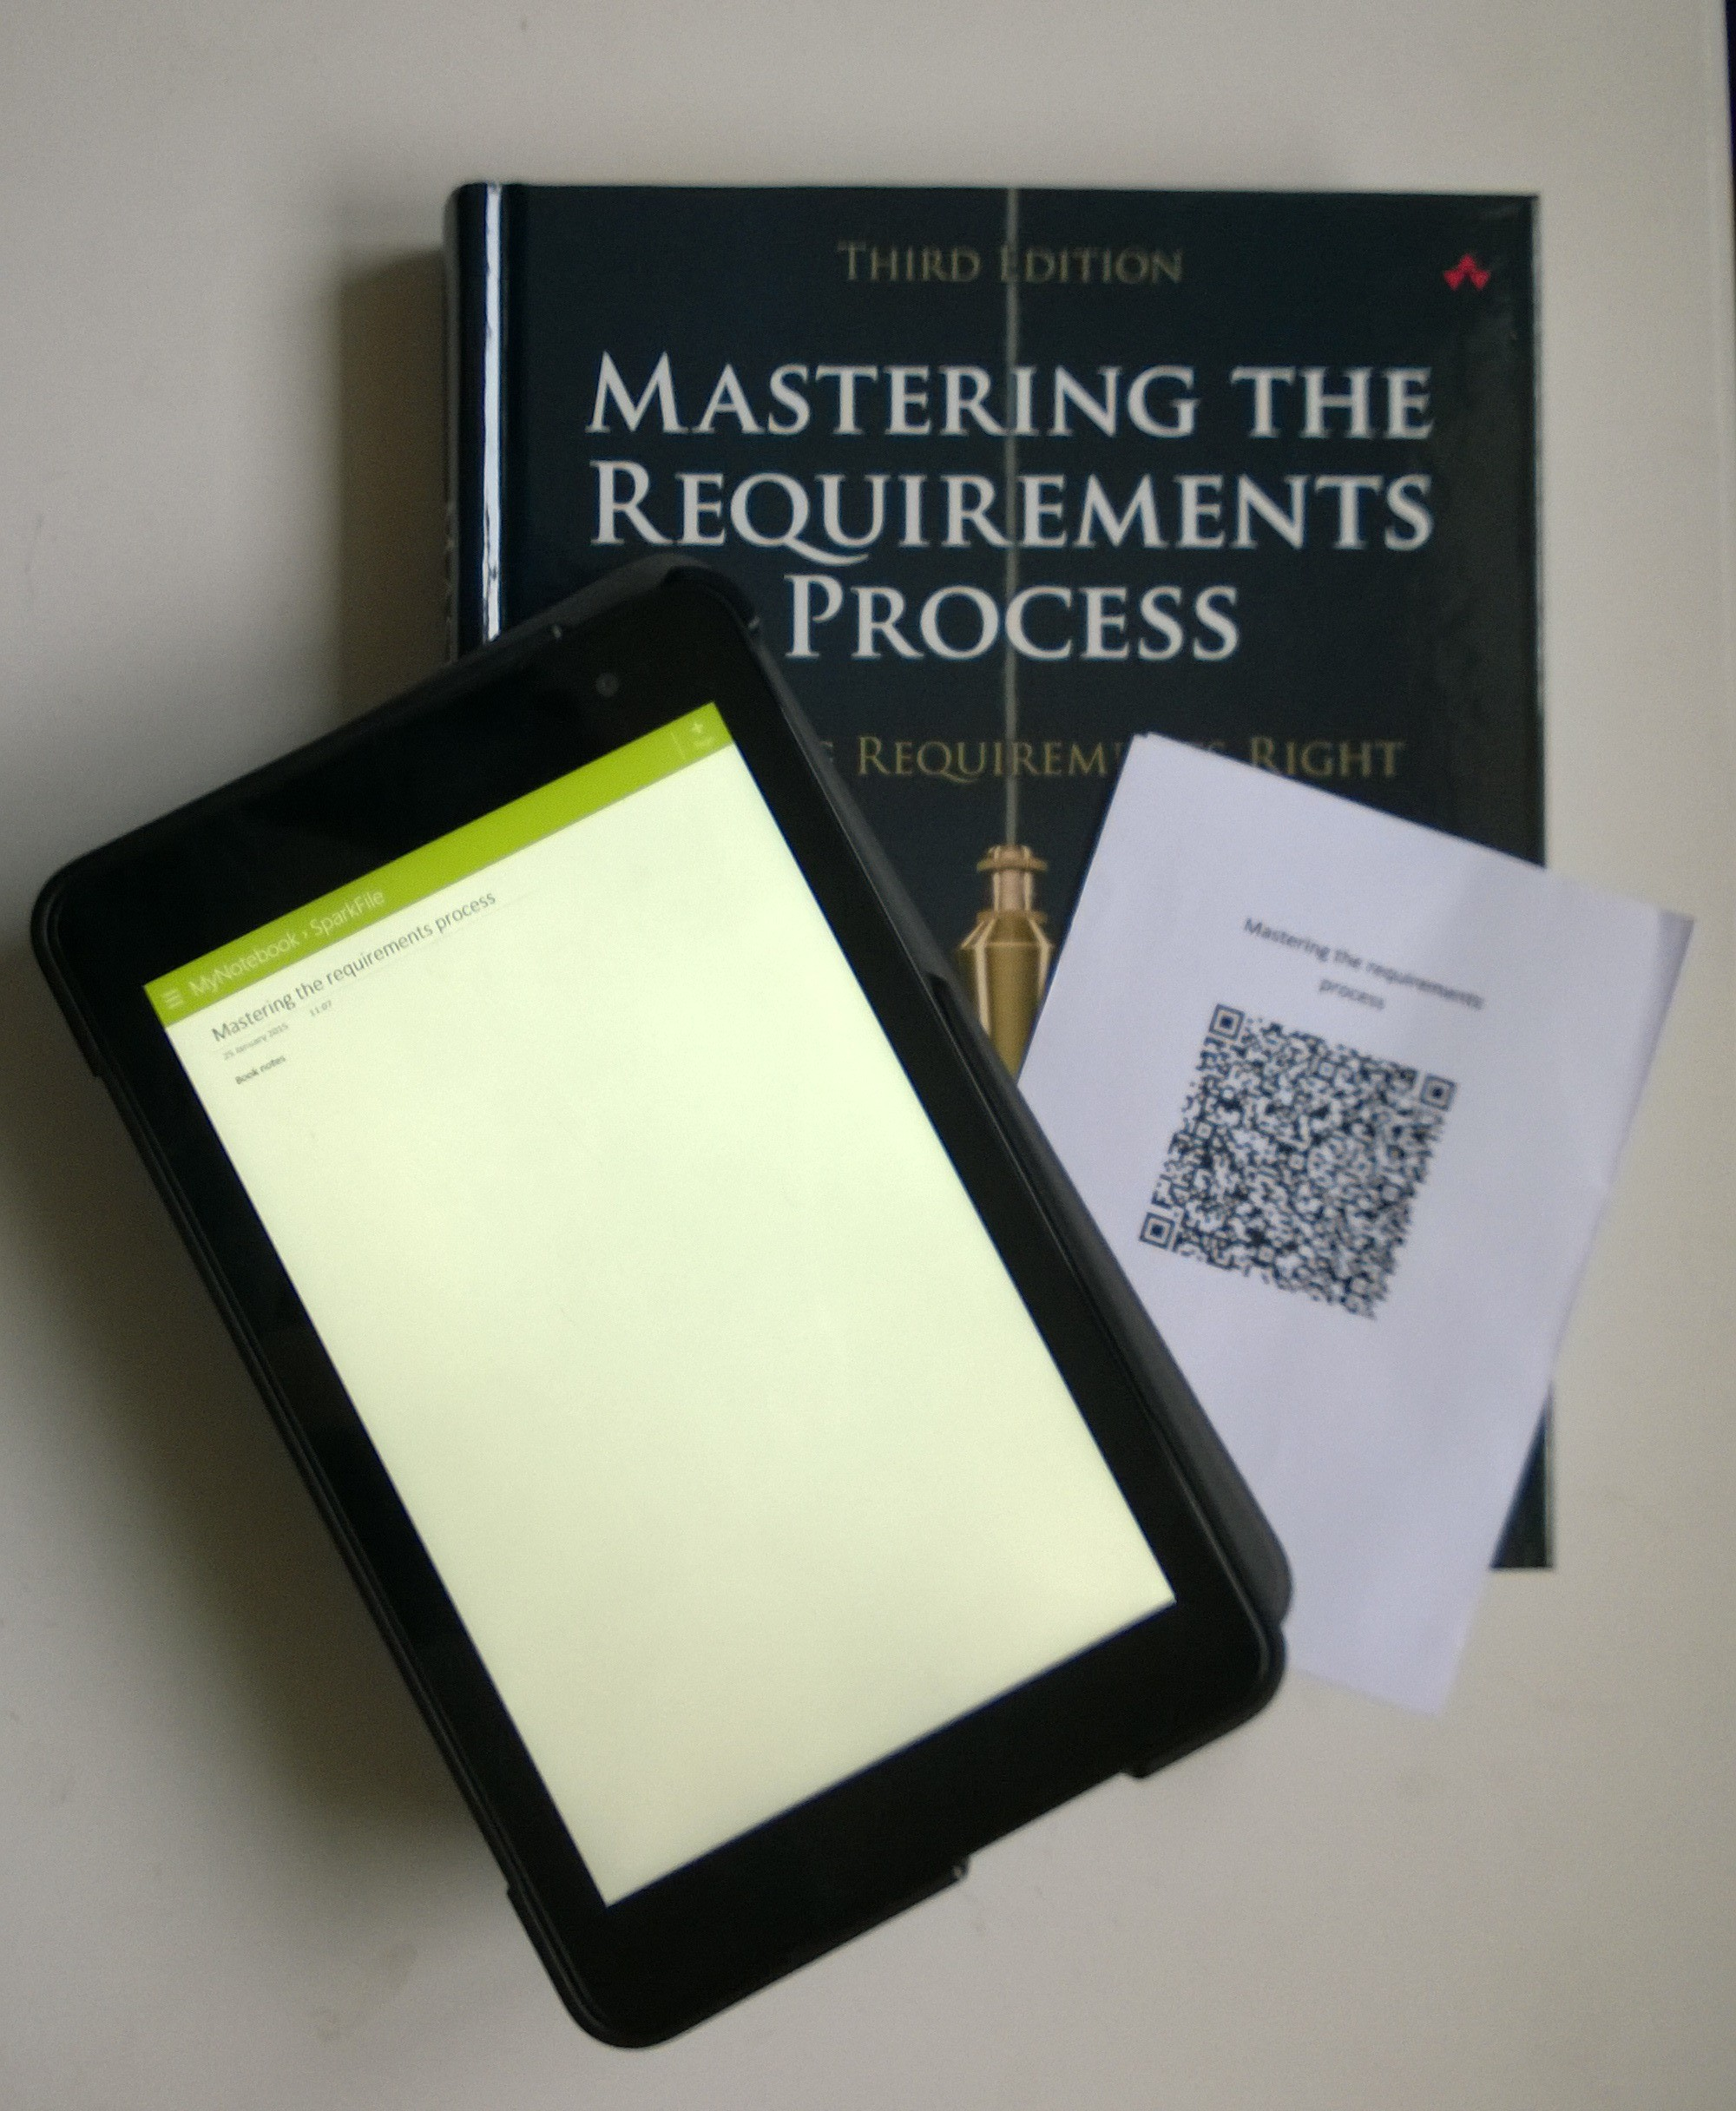 Bookmark with QR code link to OneNote